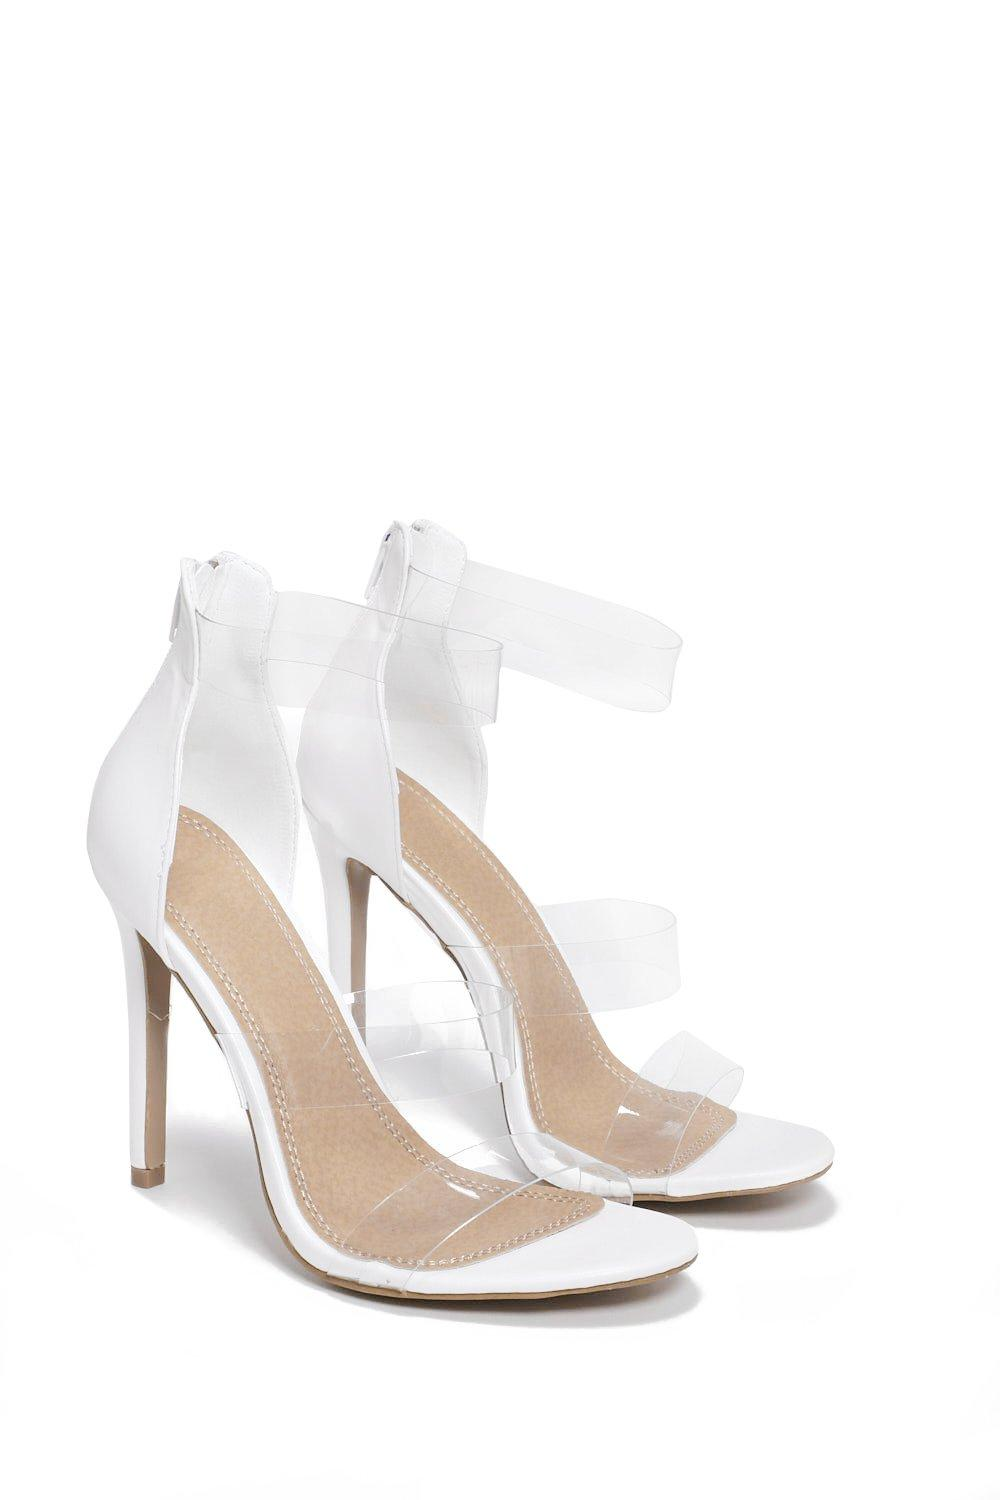 612eca8f384 All Clear Stiletto Heel